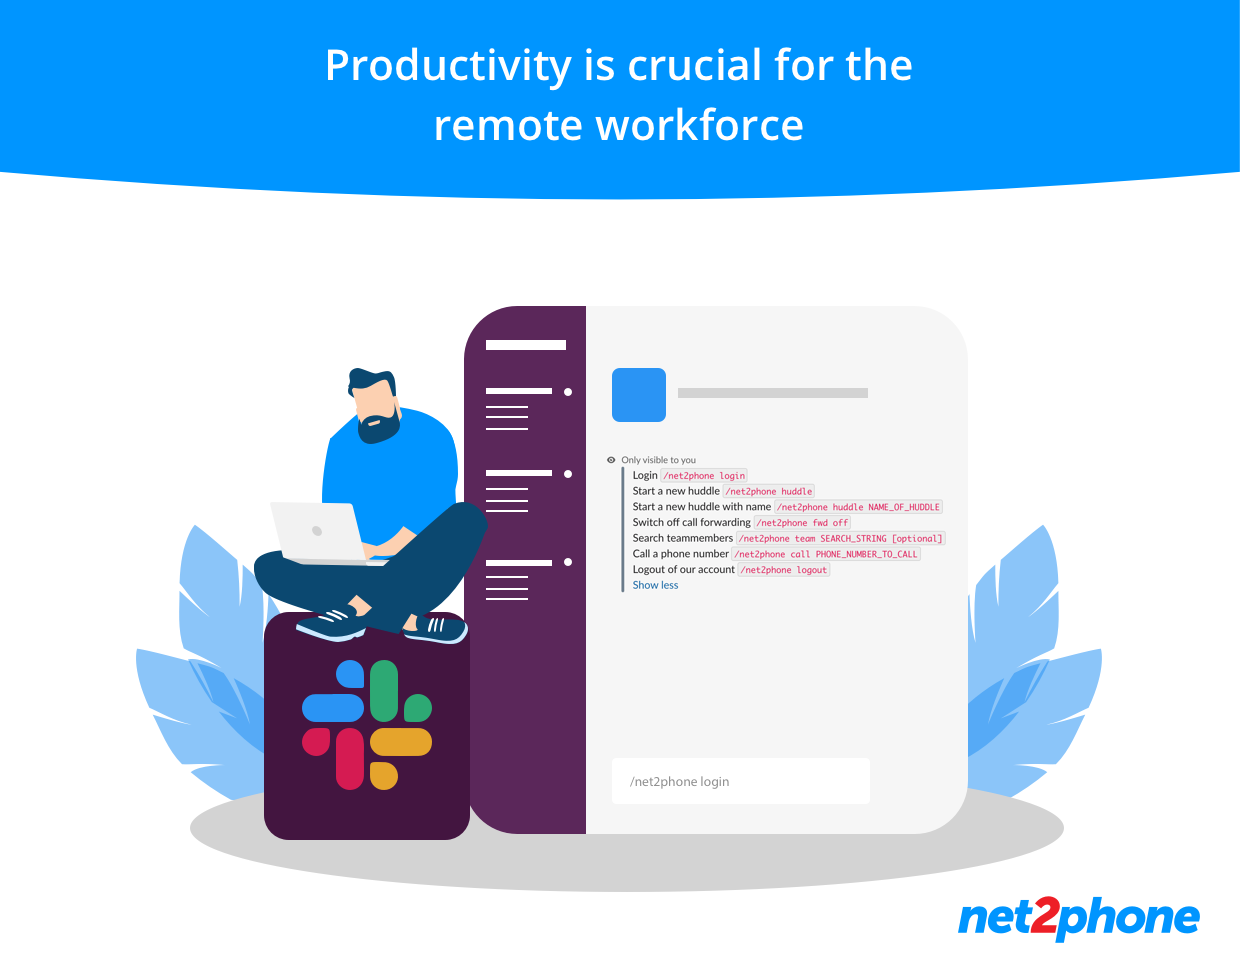 n2p slack integrationHaving a business phone system that integrates seamlessly with business apps like Salesforce, Slack, MS Teams and Zoho is crucial for the remote workforce.